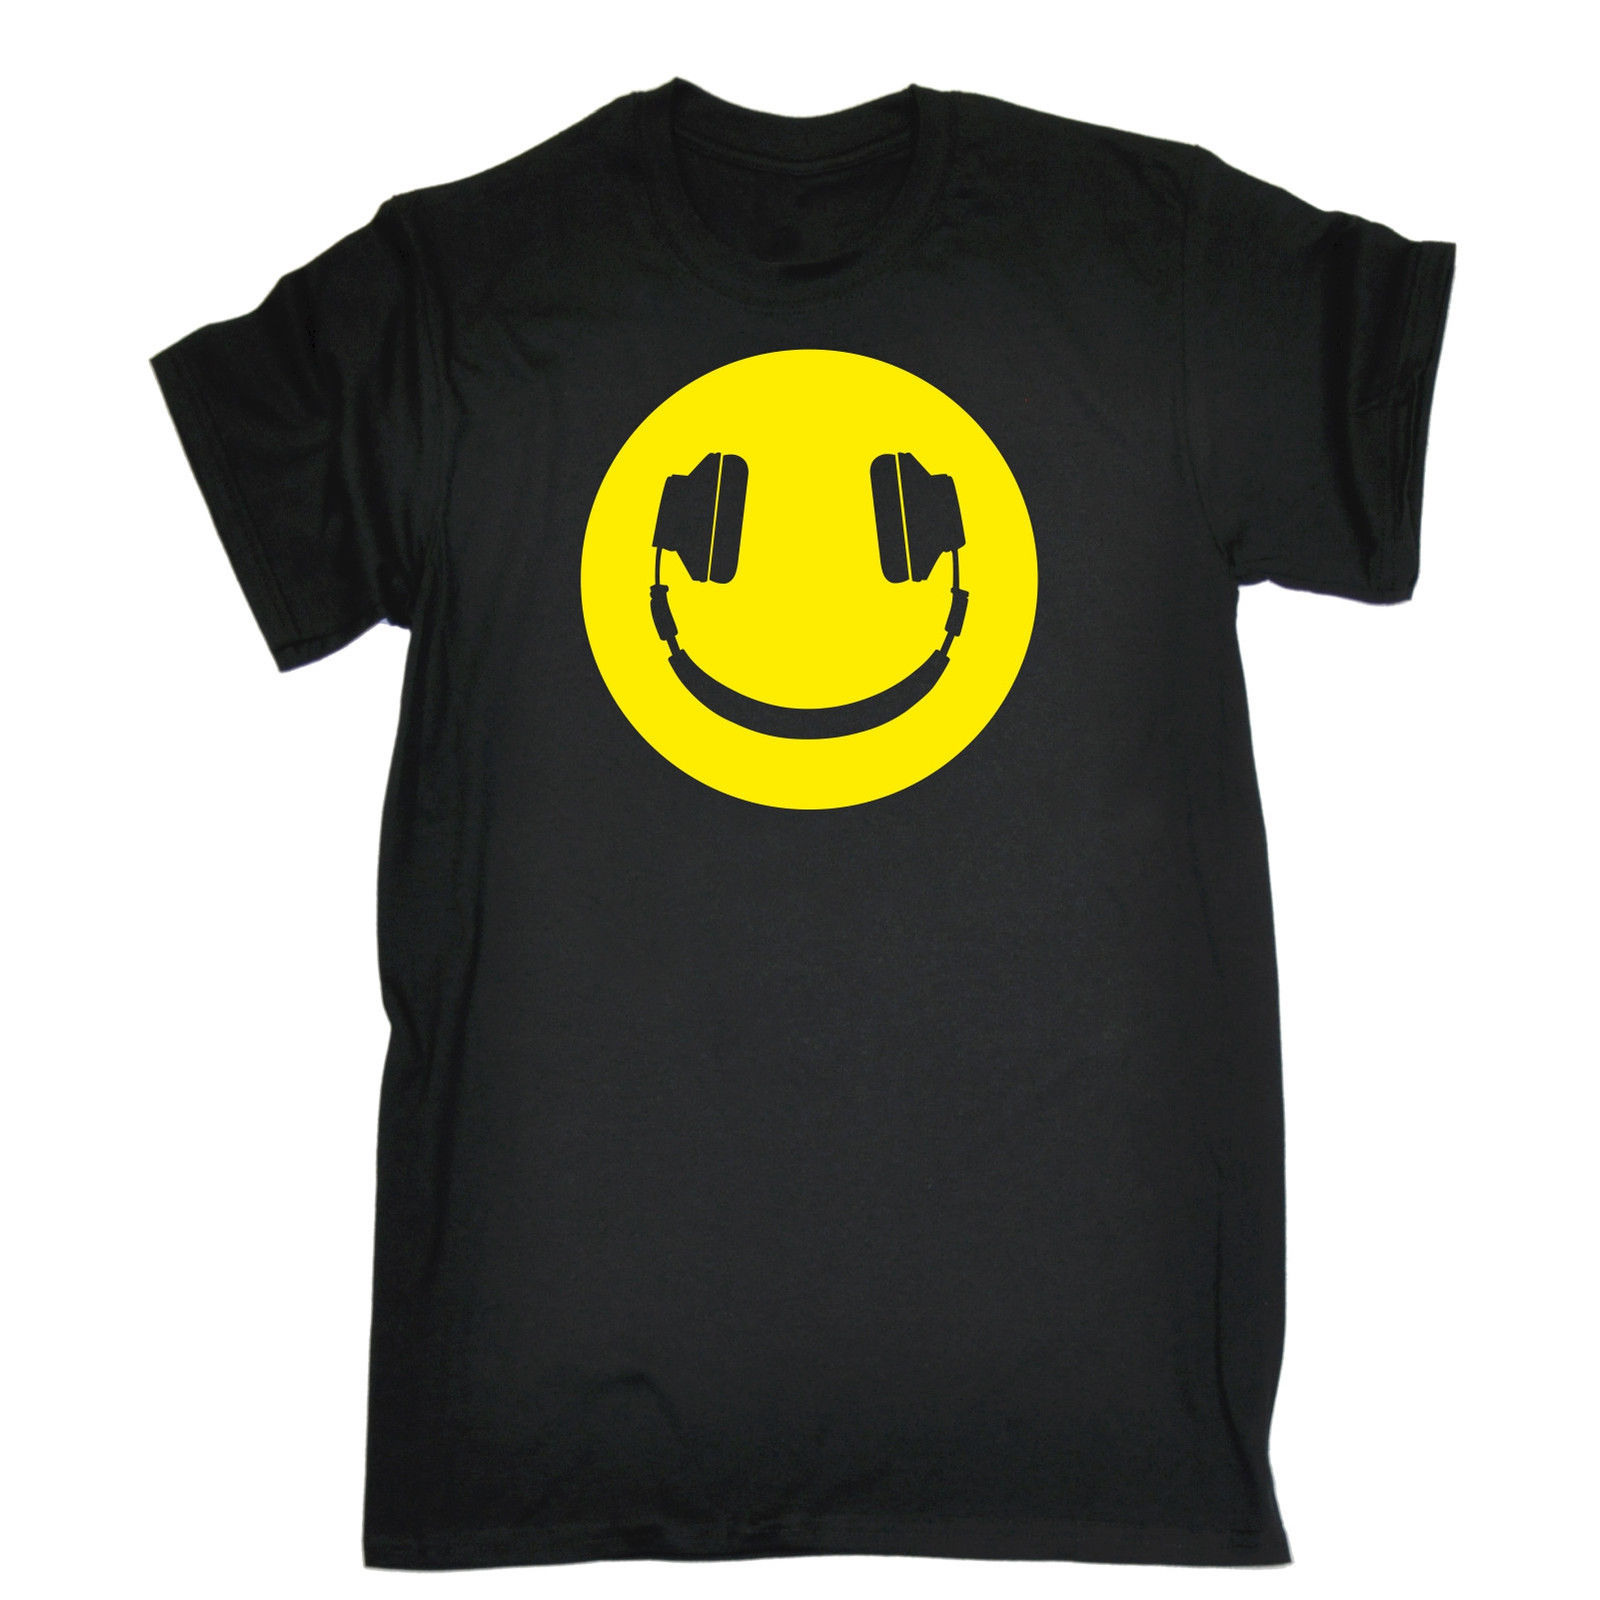 Yellow Headphone Smiley T-SHIRT Tee Dj Party Dance Rave Funny Birthday Gift 123t Personalized T Shirt T Shirt